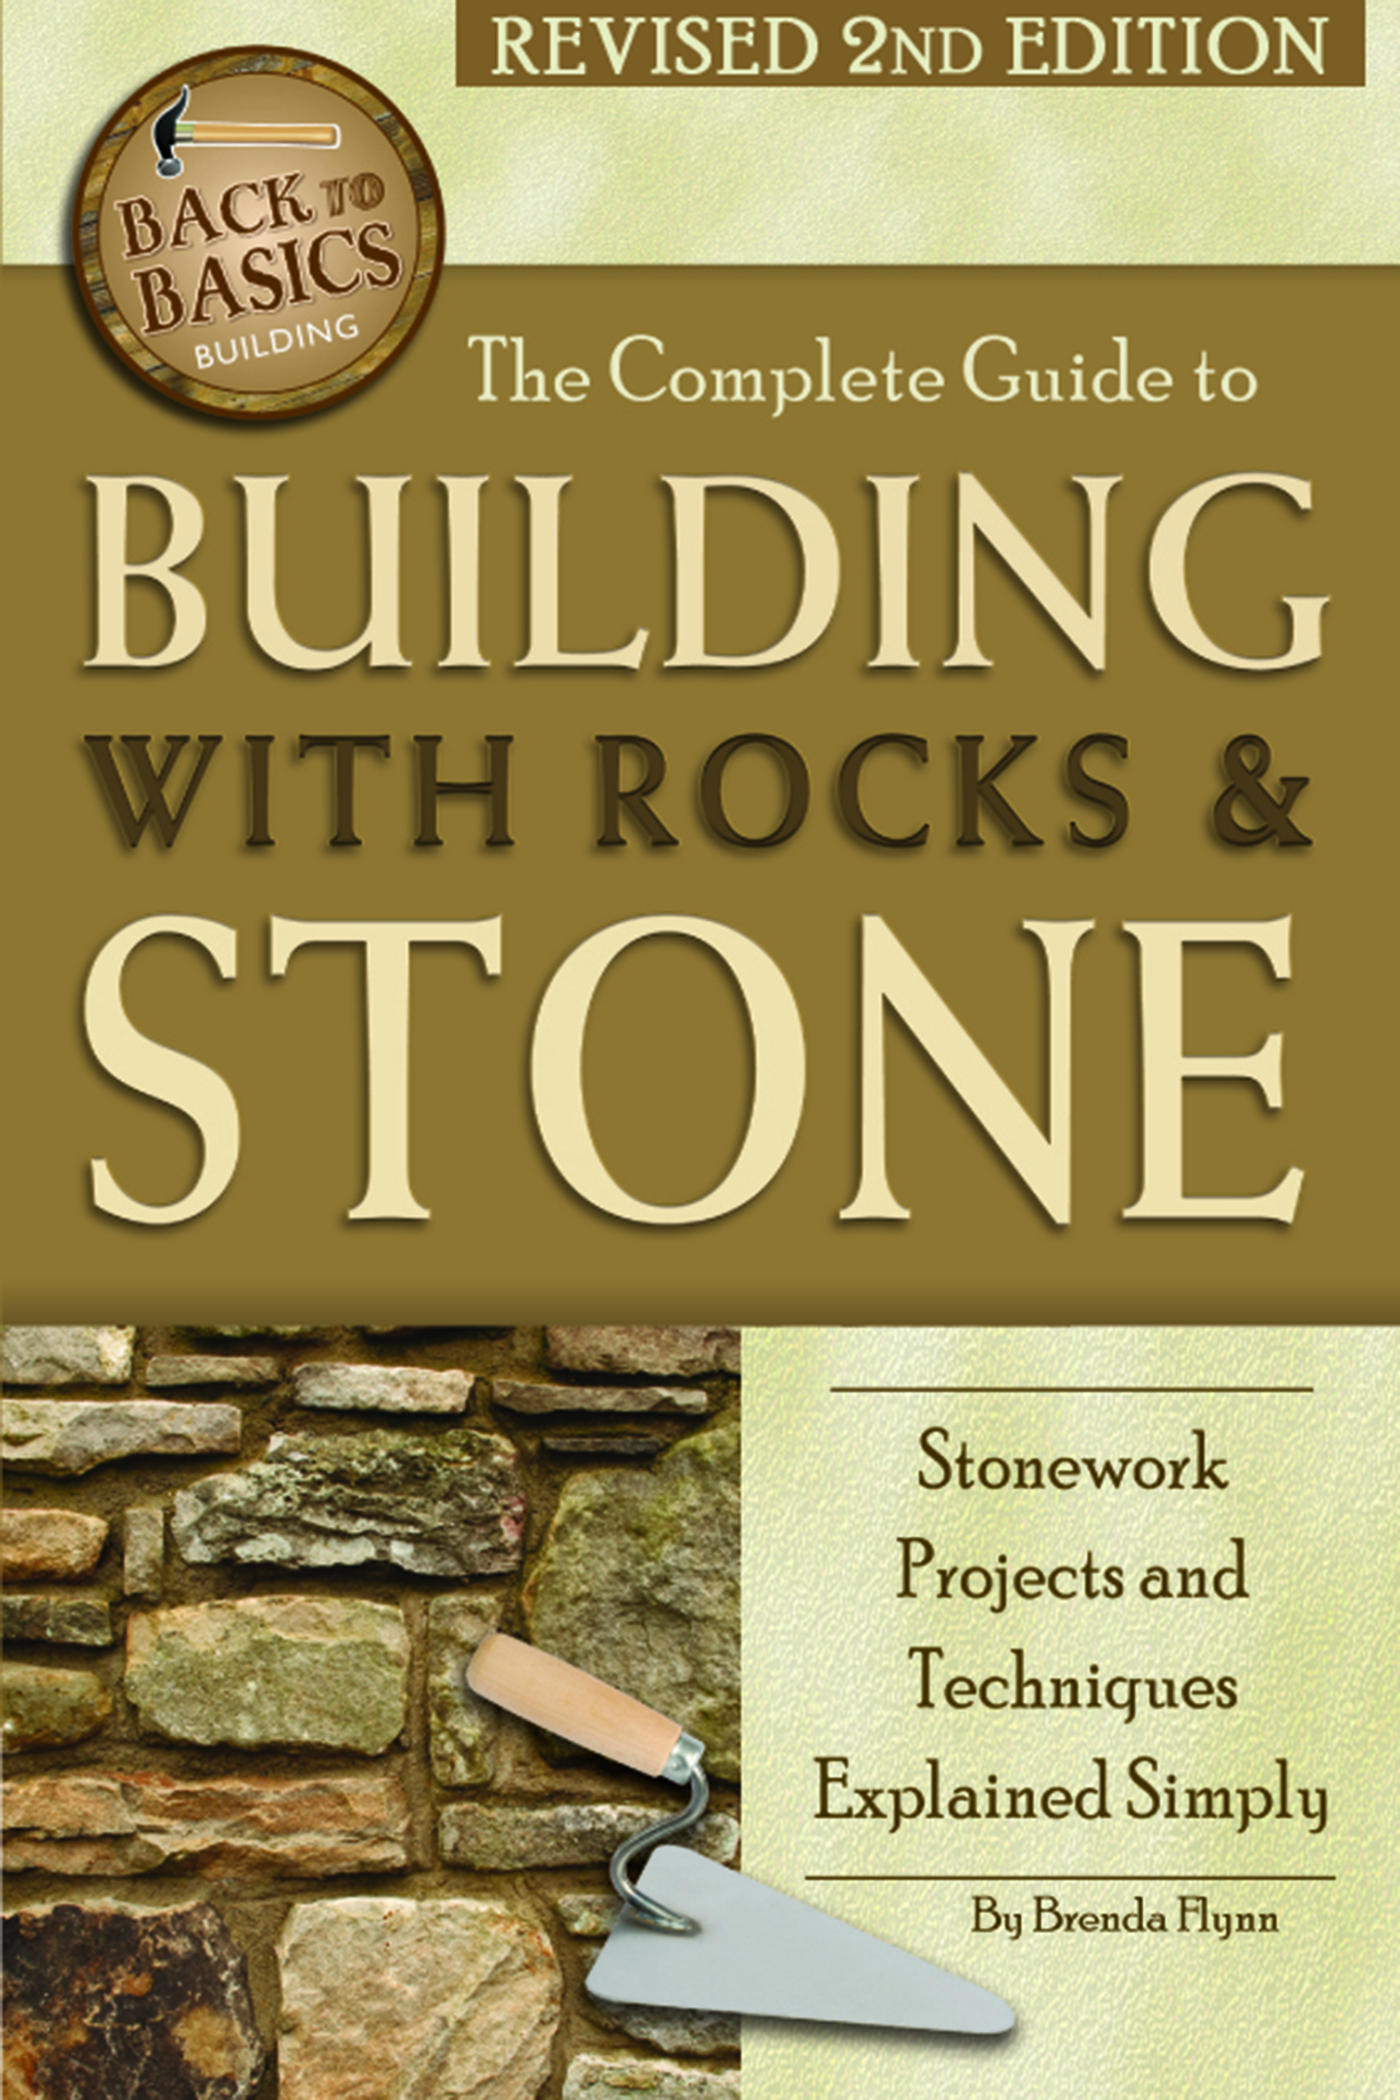 The Complete Guide to Building with Rocks & Stone  Stonework Projects and Techniques Explained Simply Revised 2nd Edition